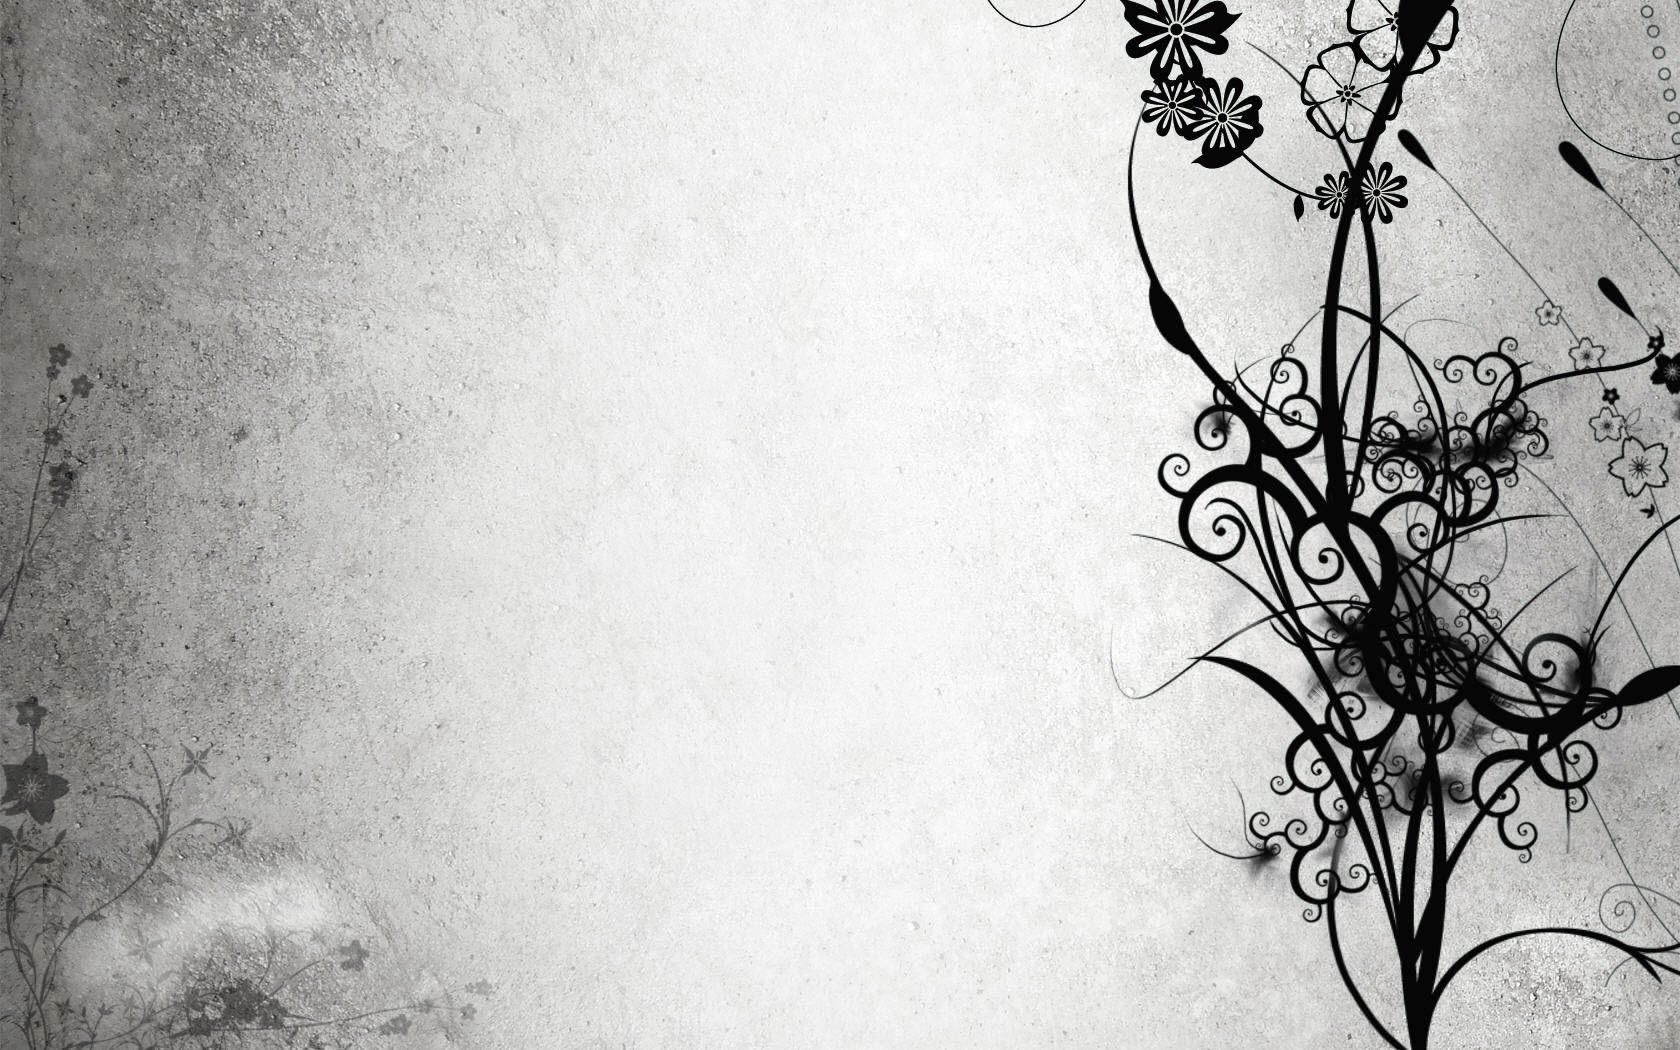 Best Black and white background ideas on Pinterest Black and